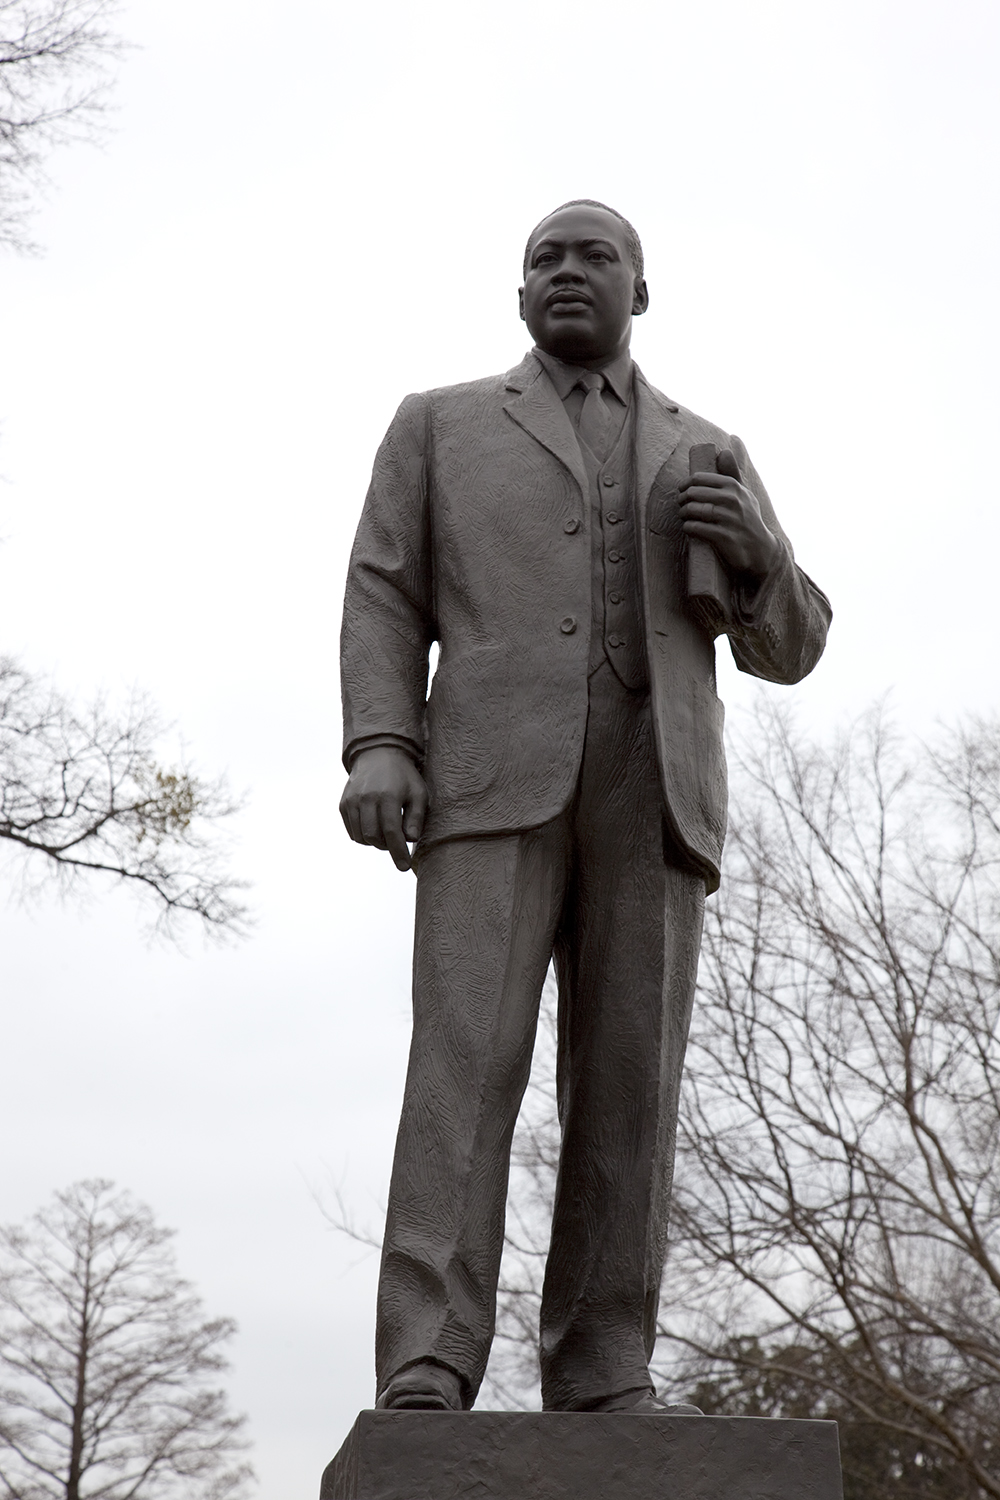 Statue of Dr. Martin Luther King Jr. in the Kelly Ingram Park, Birmingham, AL, 2010. Photograph by Carol M. Highsmith. Library of Congress, Prints and Photographs Division.